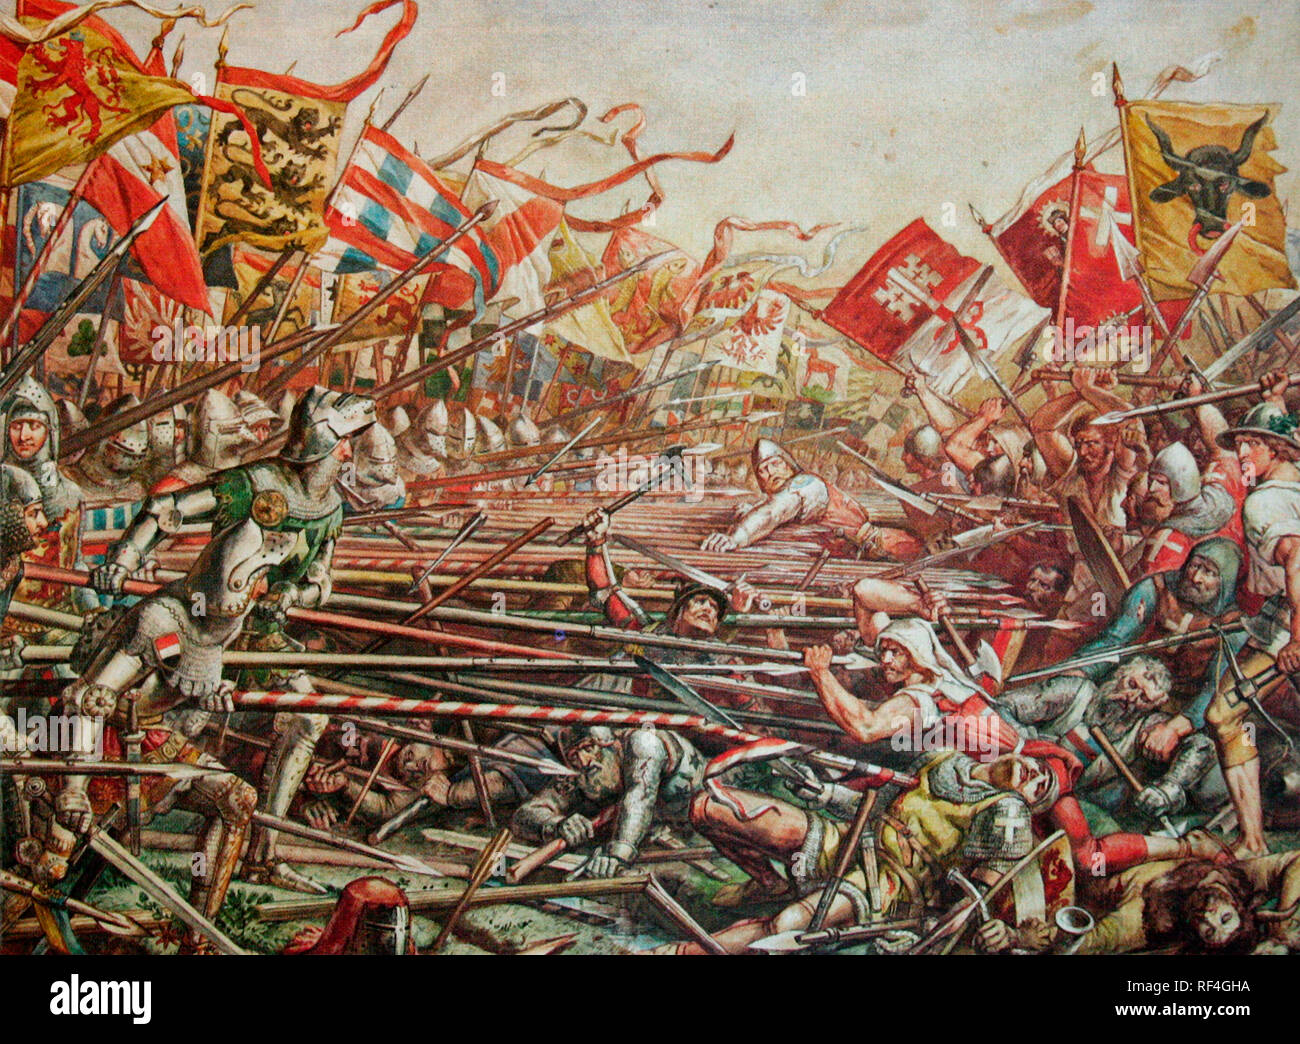 The Battle of Sempach - The Battle of Sempach was fought on 9 July 1386, between Leopold III, Duke of Austria and the Old Swiss Confederacy. The battle was a decisive Swiss victory in which Duke Leopold and numerous Austrian nobles died. Stock Photo